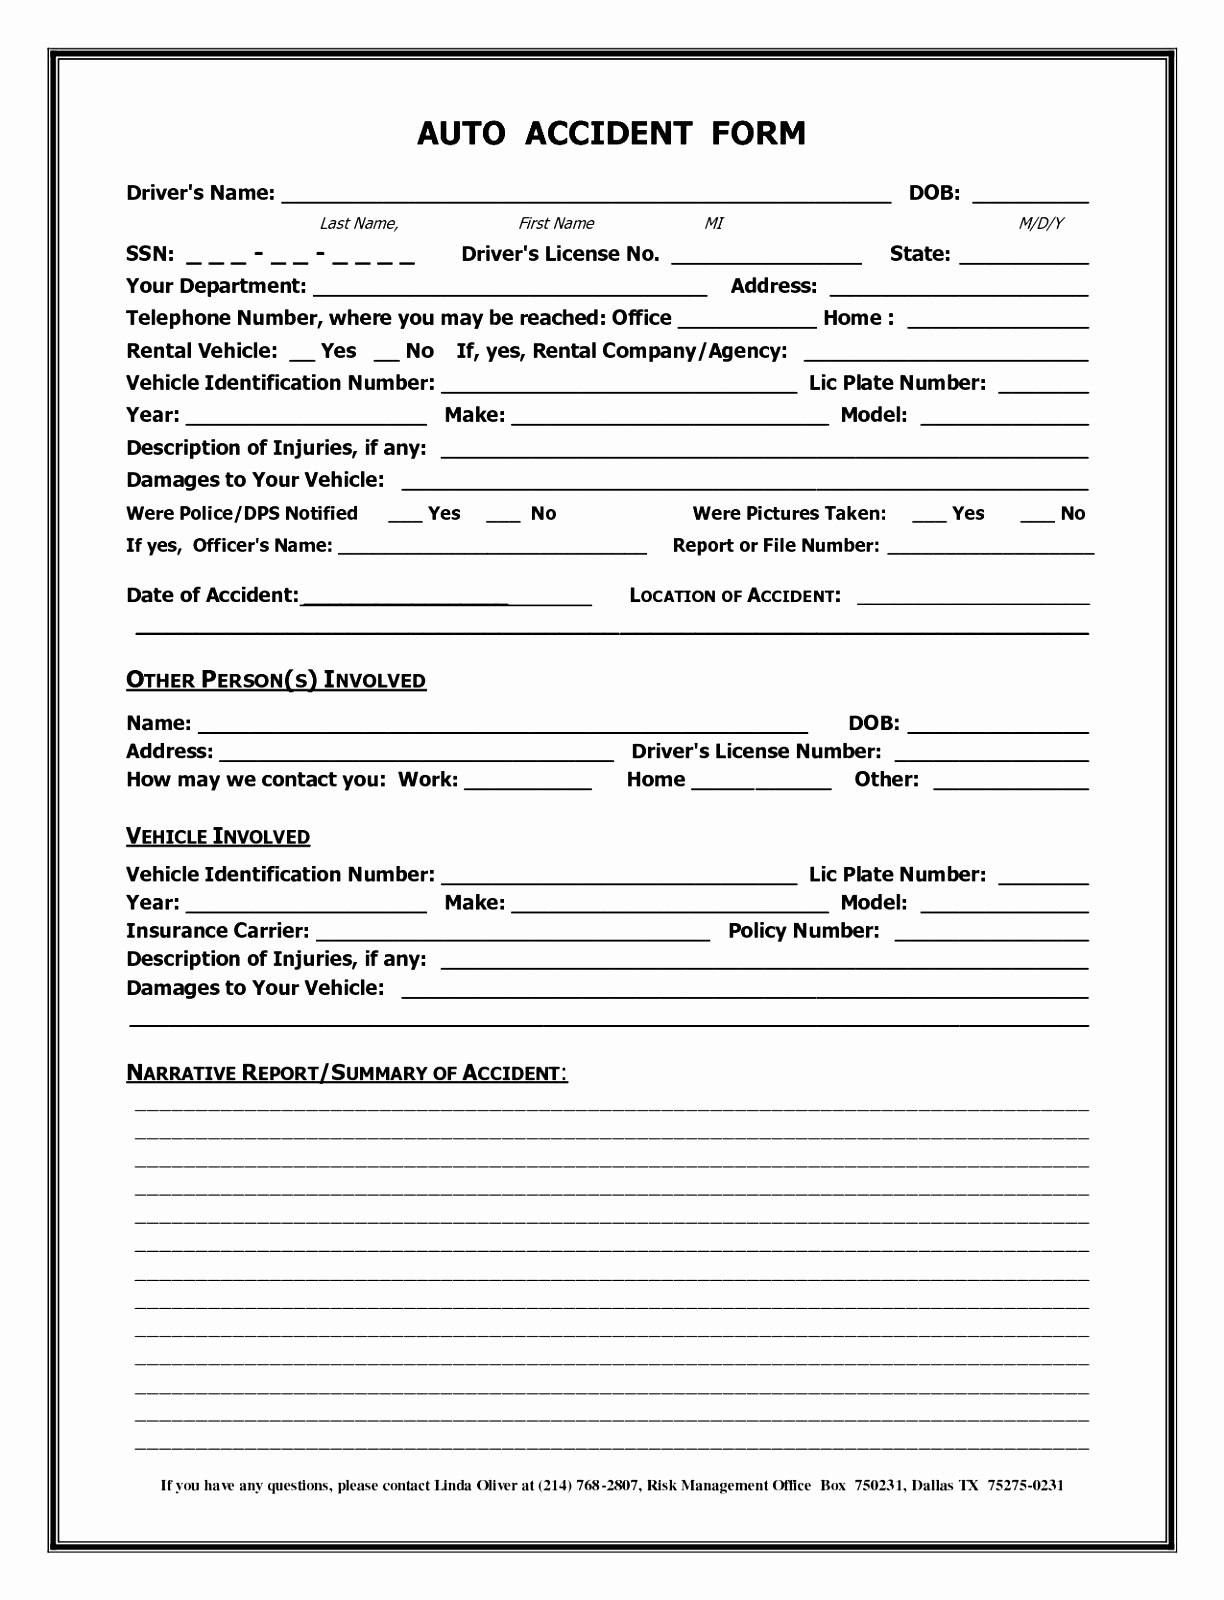 Accident Report Form Template Uk Of Motor Vehicle Choice Image Throughout Motor Vehicle Accident Report Form Template